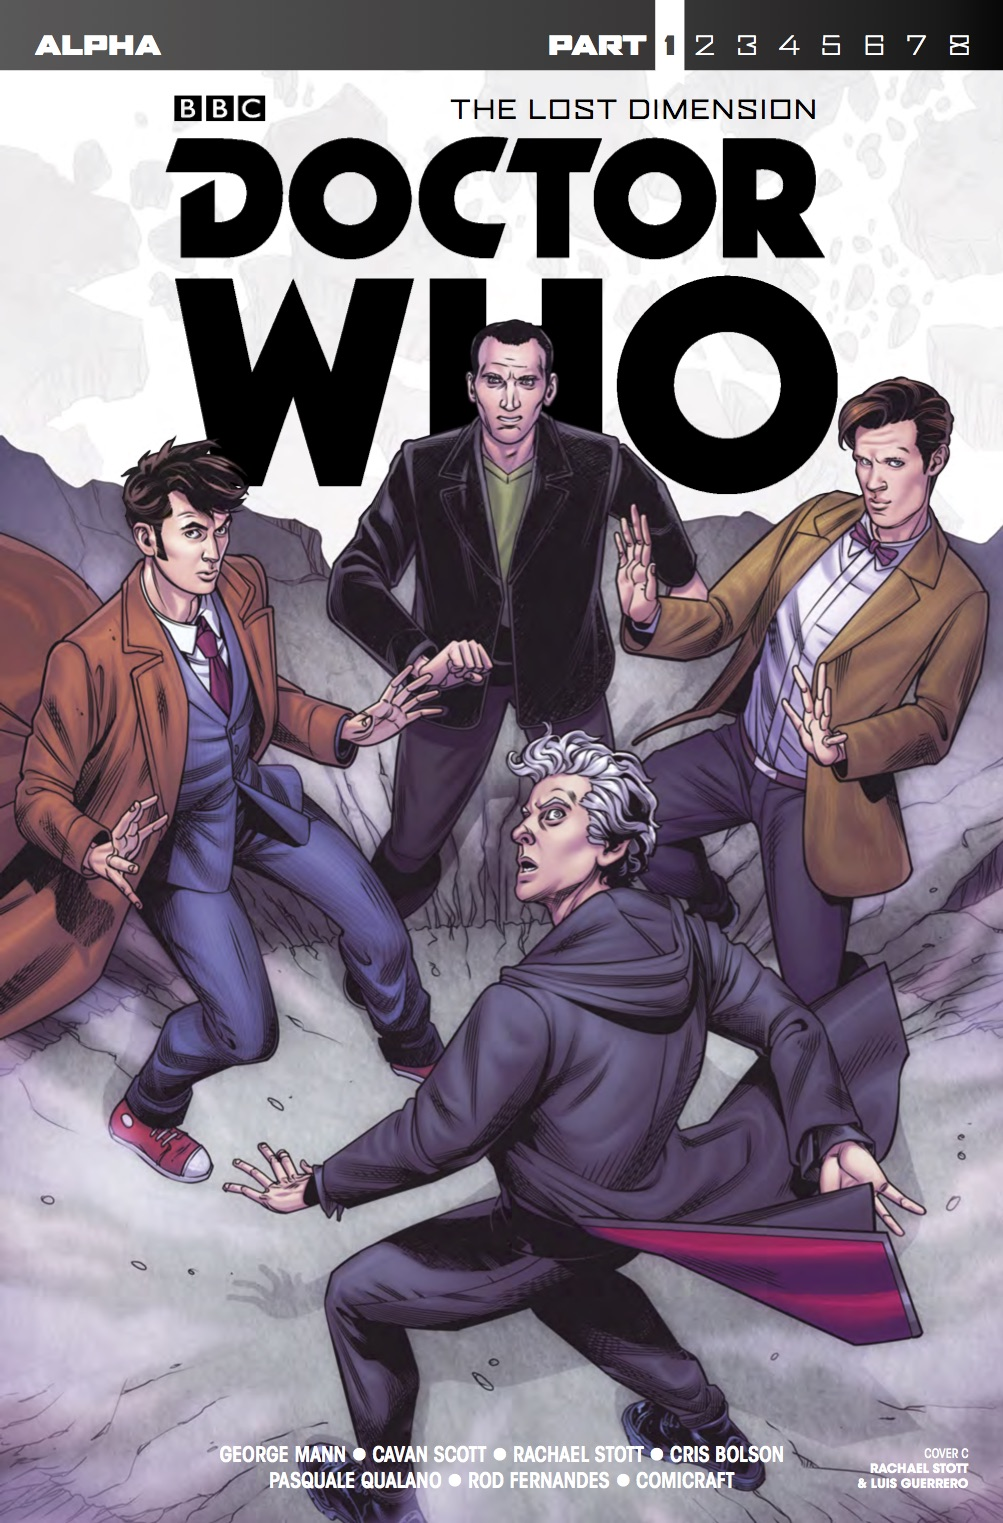 DOCTOR WHO: THE LOST DIMENSION - ALPHA -COVER C: RACHAEL STOTT AND LUIS GUERRERO